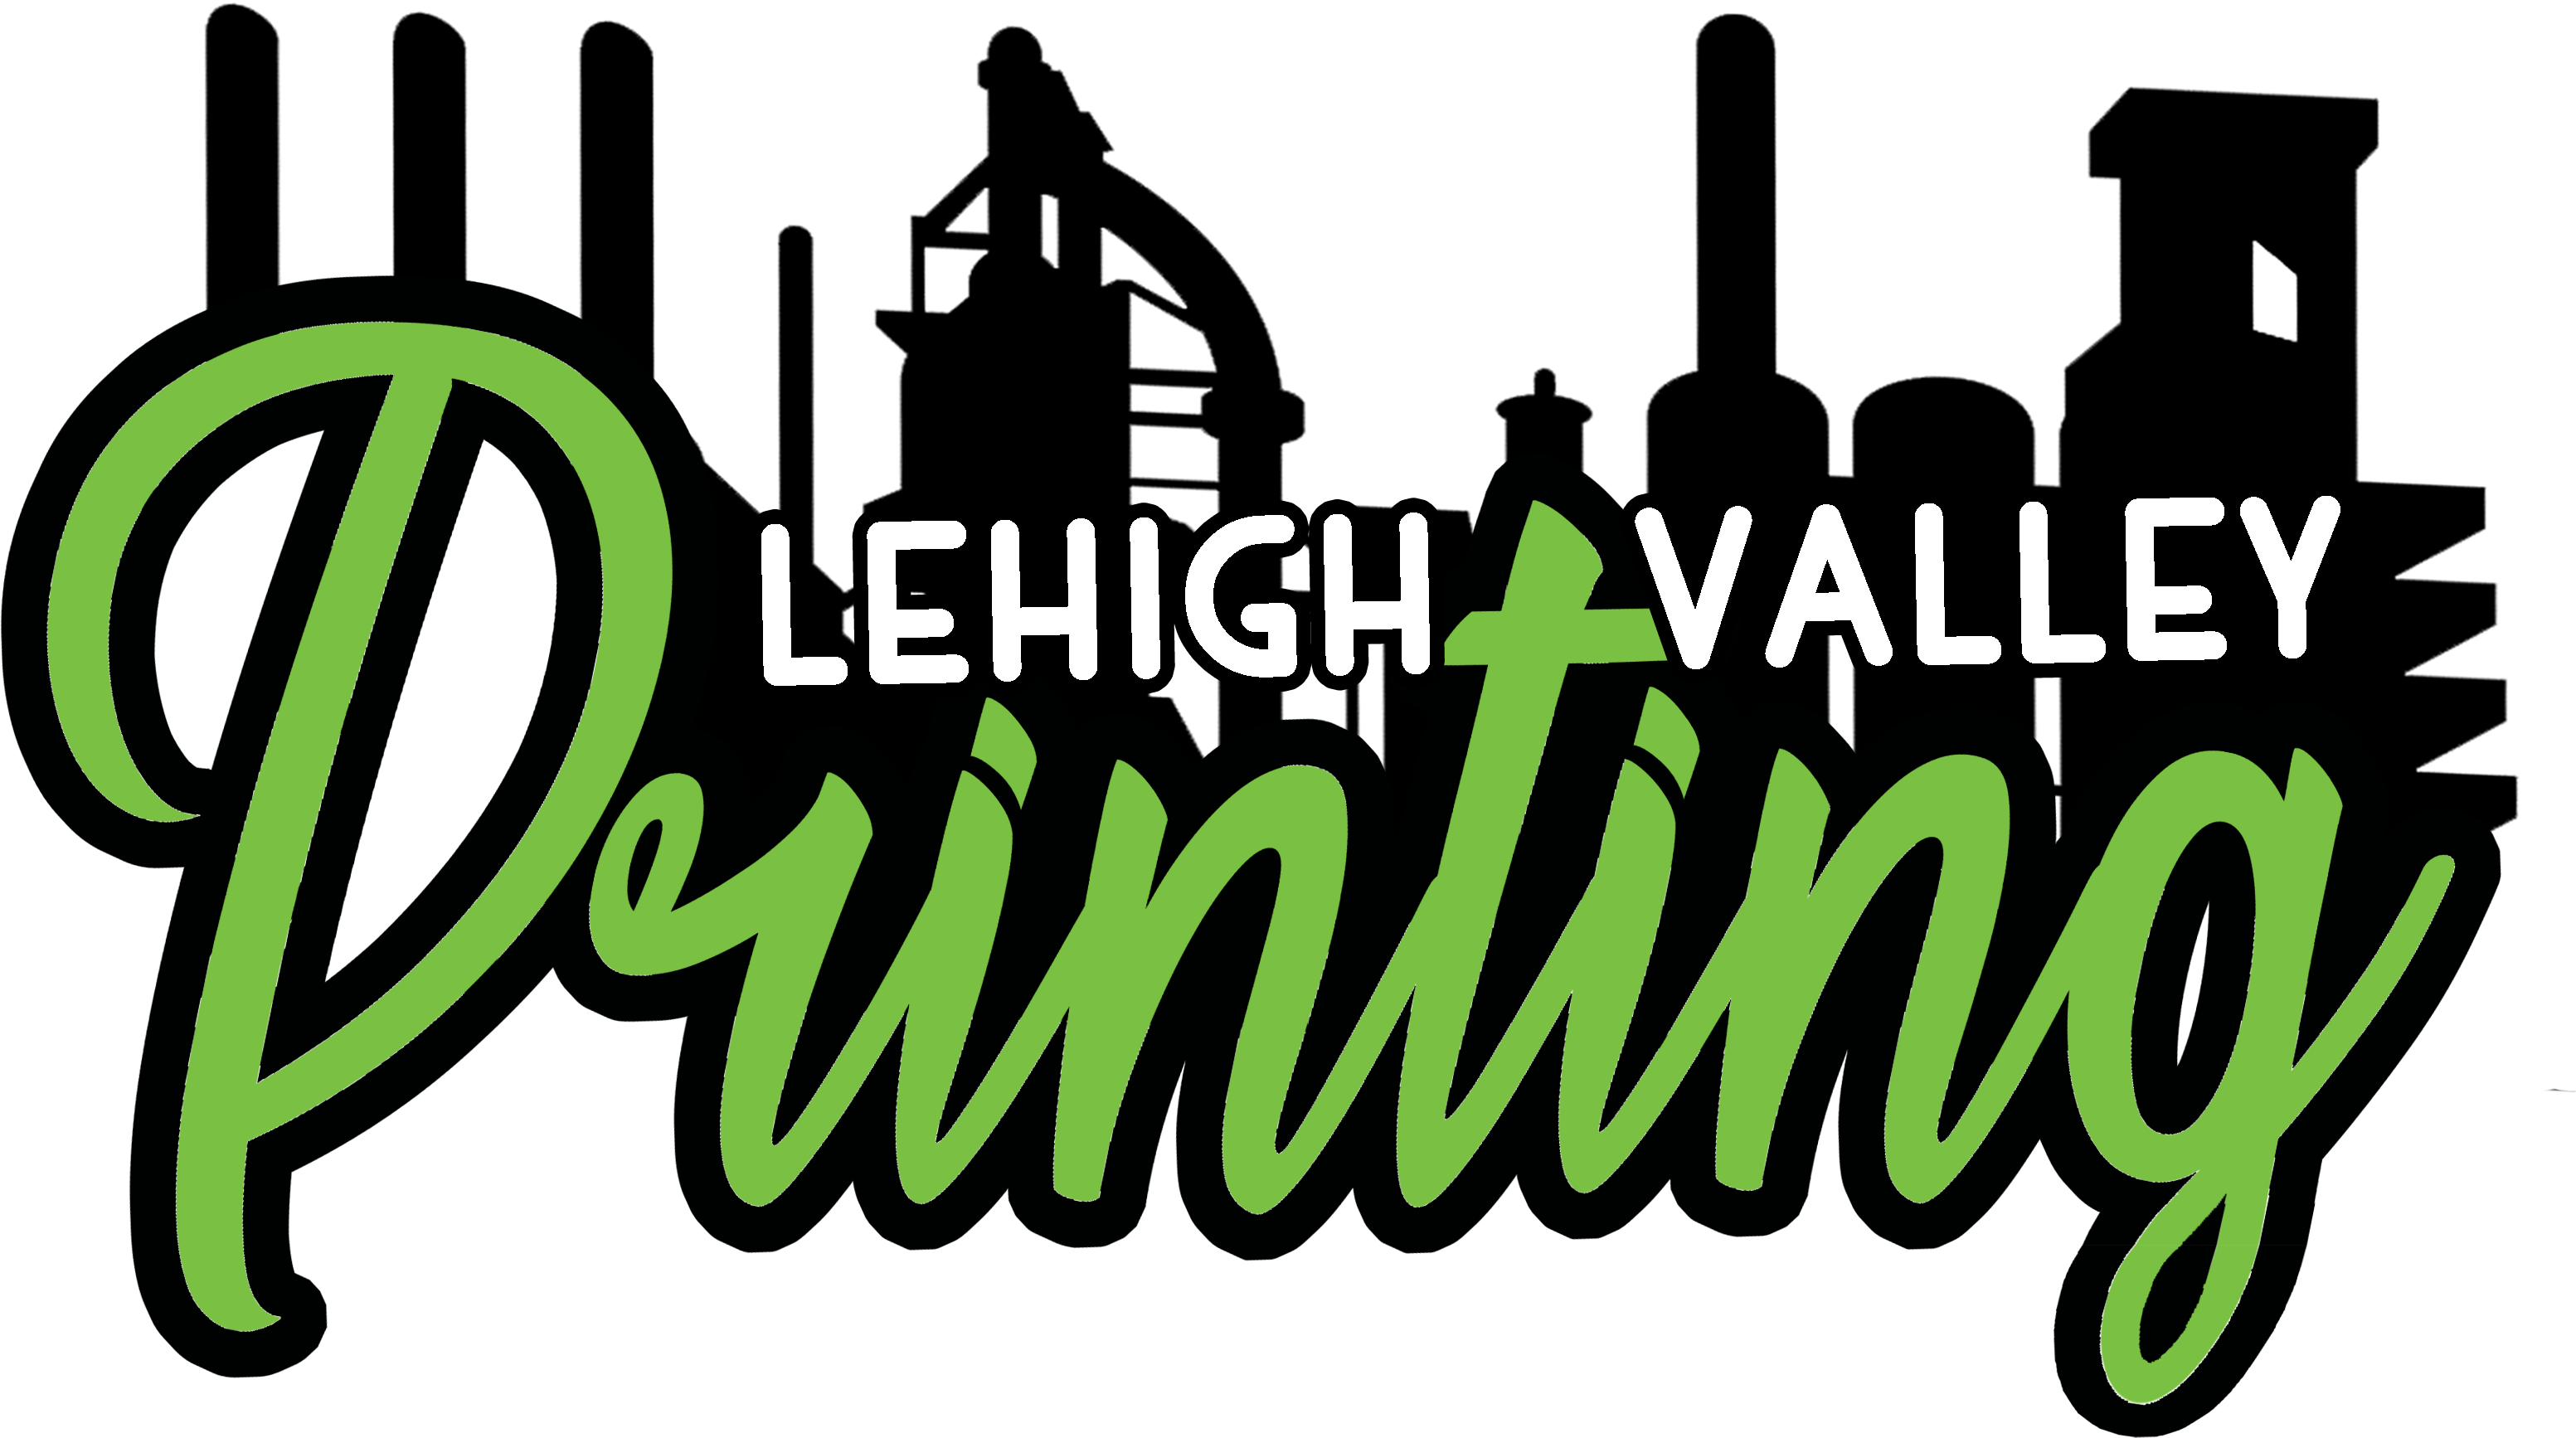 Lehigh Valley Printing